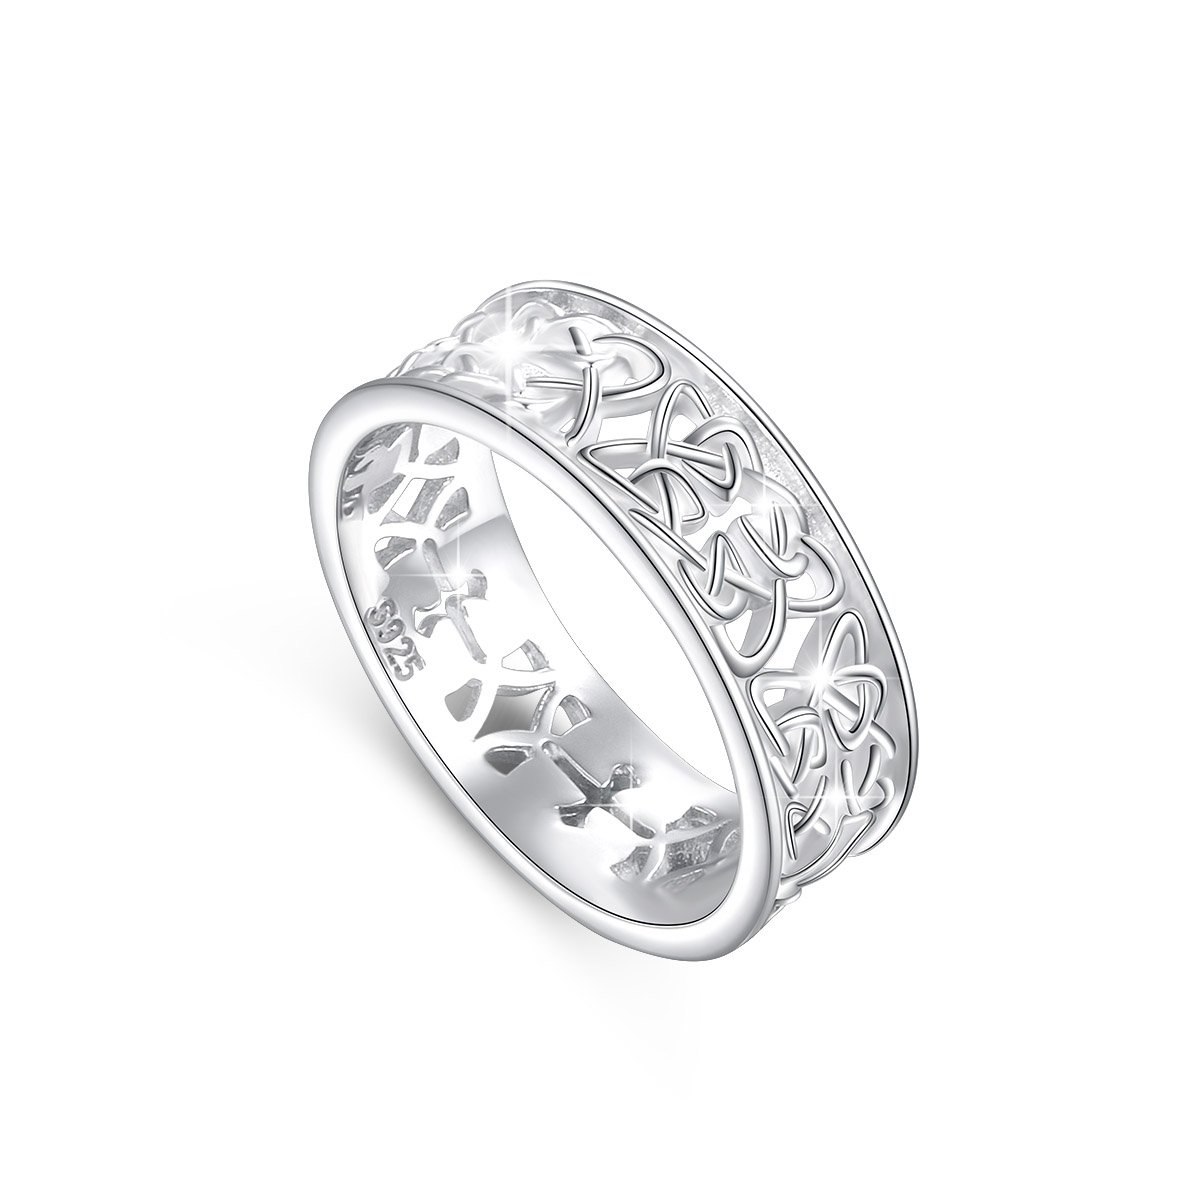 DAOCHONG Nickel-Free 925 Sterling Silver Irish Love Trinity Woven Celtic Knot Band Ring for Women, Size 6 7 8 (9)